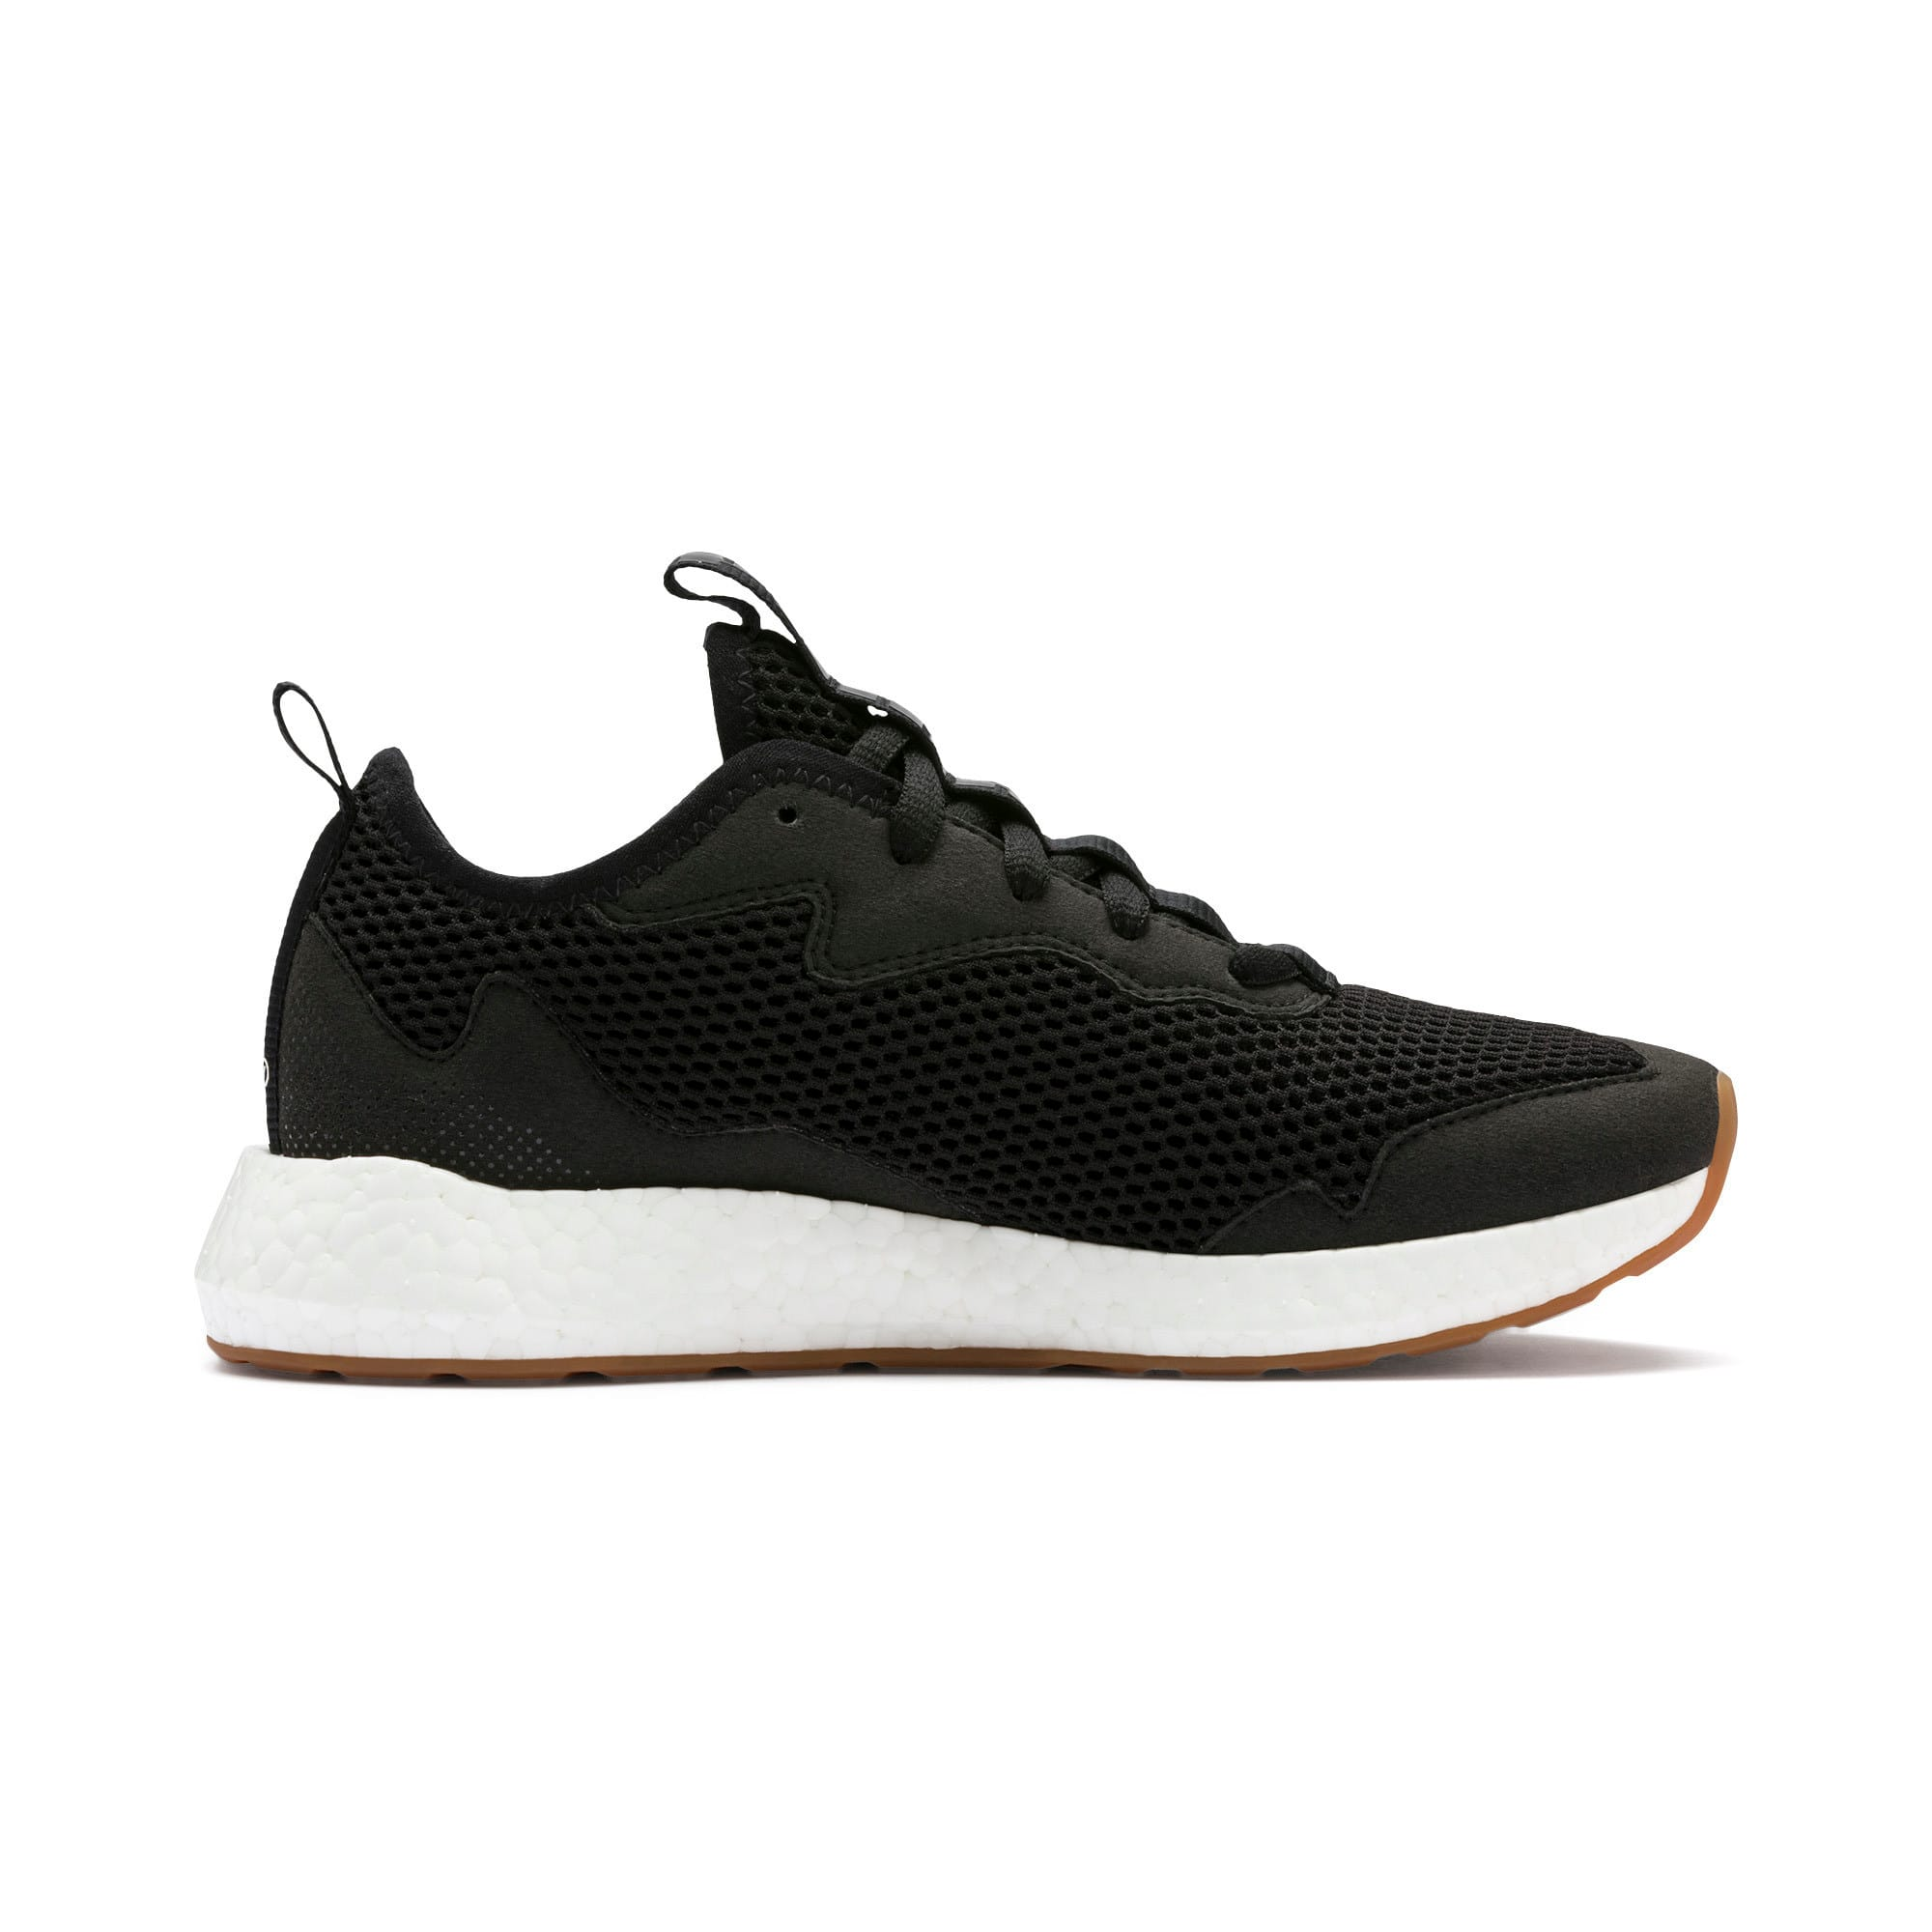 Thumbnail 5 of Chaussure de course NRGY Neko Skim Youth, Puma Black-Puma White, medium